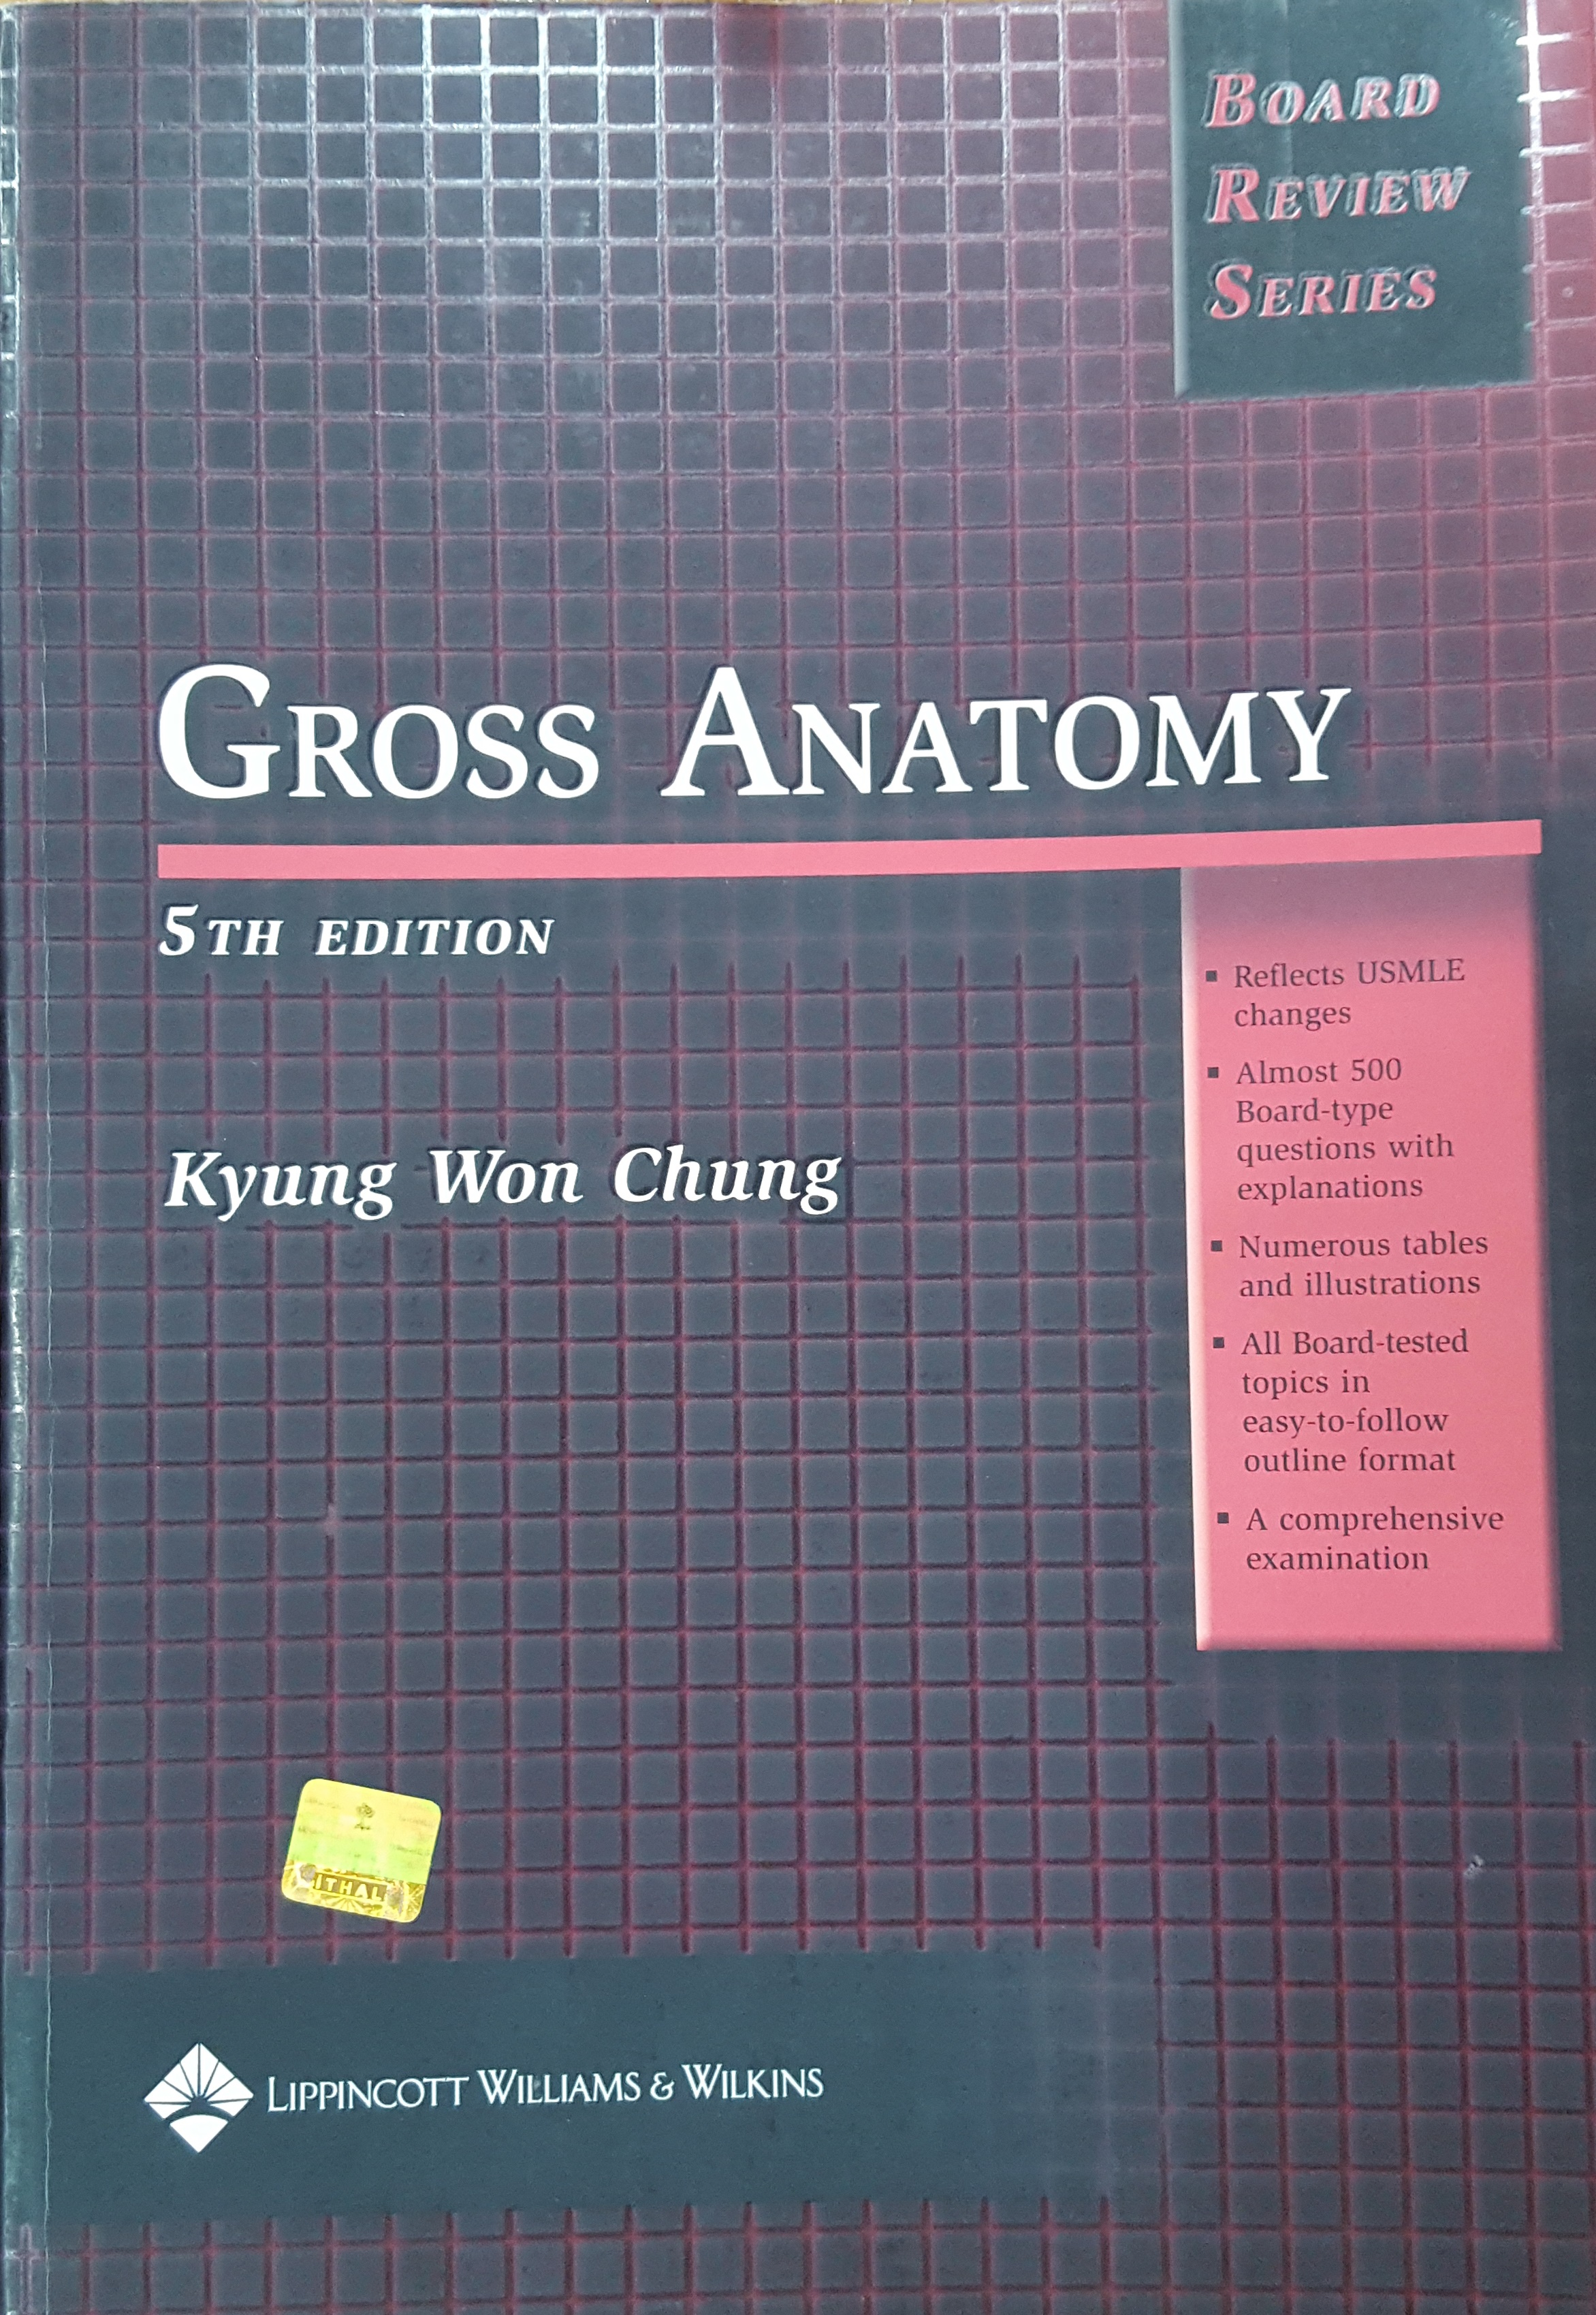 Gross Anatomy 5th Edition Board Review Series Anesthesiology